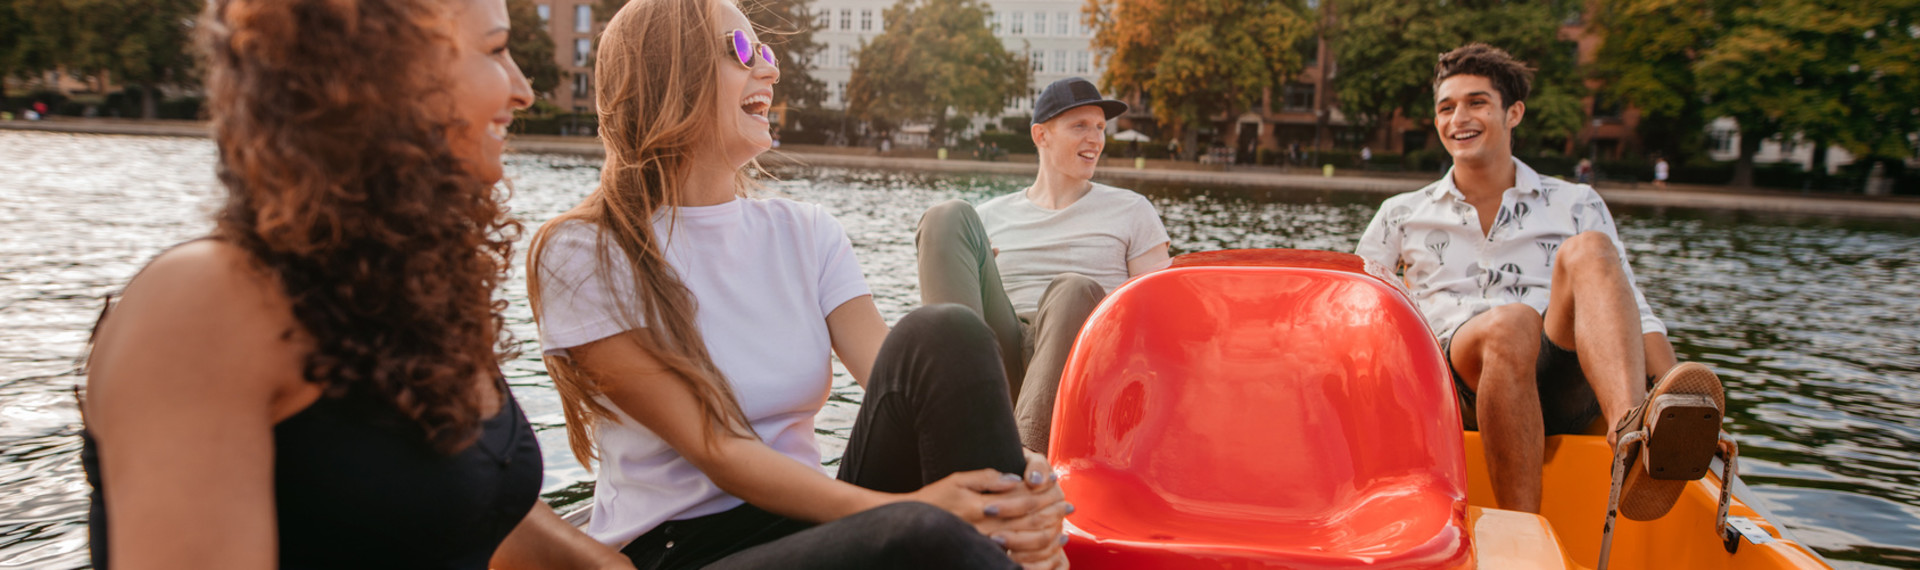 Pedalo Challenge in Amsterdam | Pissup